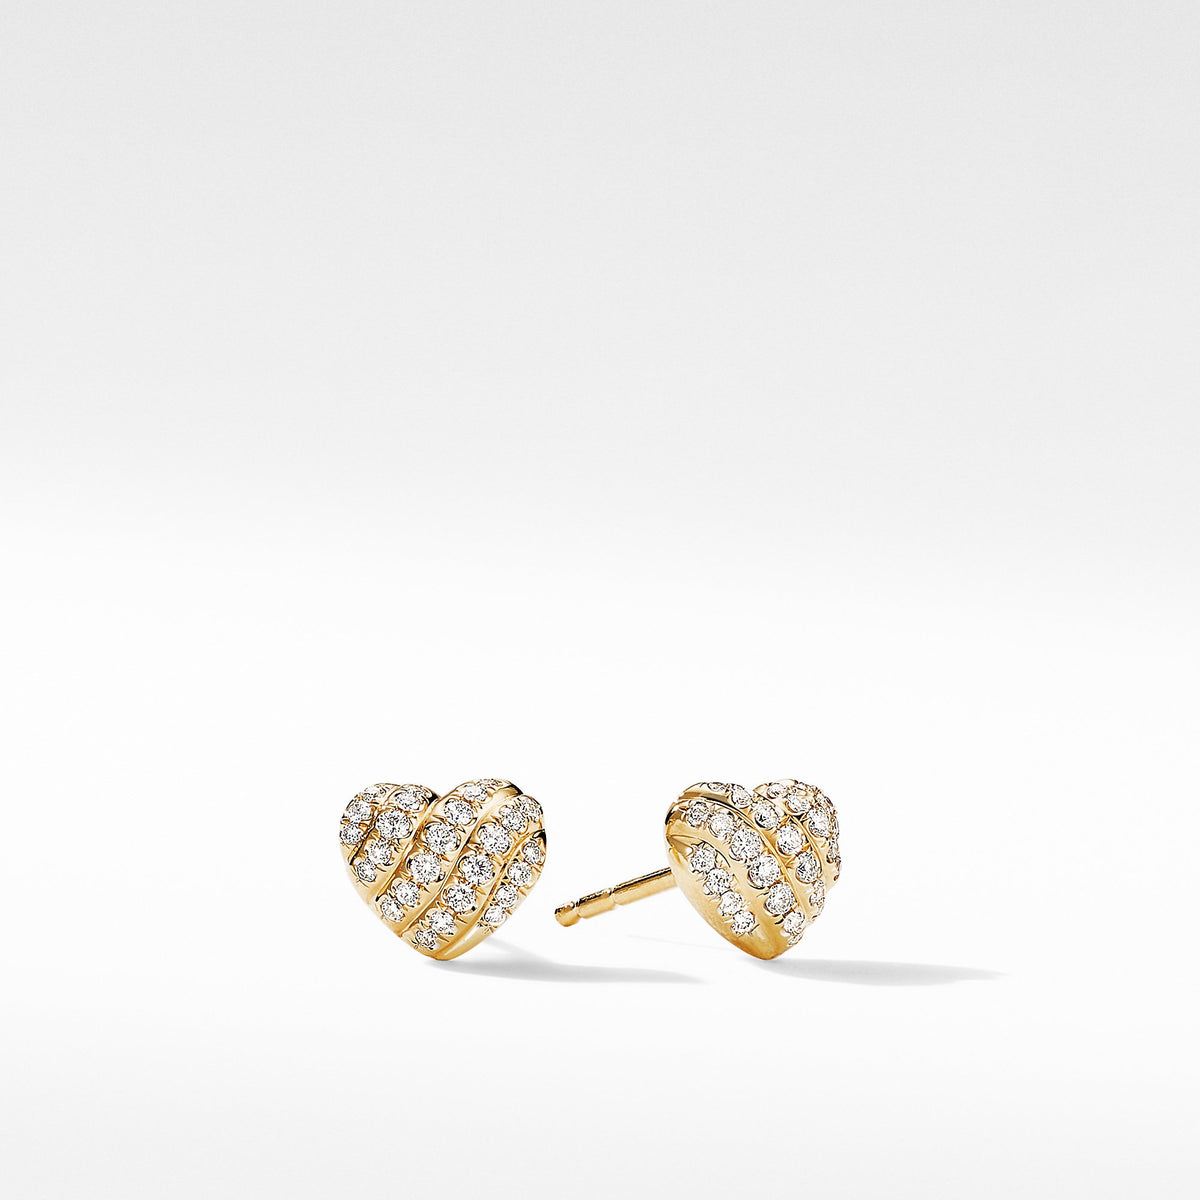 Heart Stud Earrings in 18K Yellow Gold with  Pave Diamonds